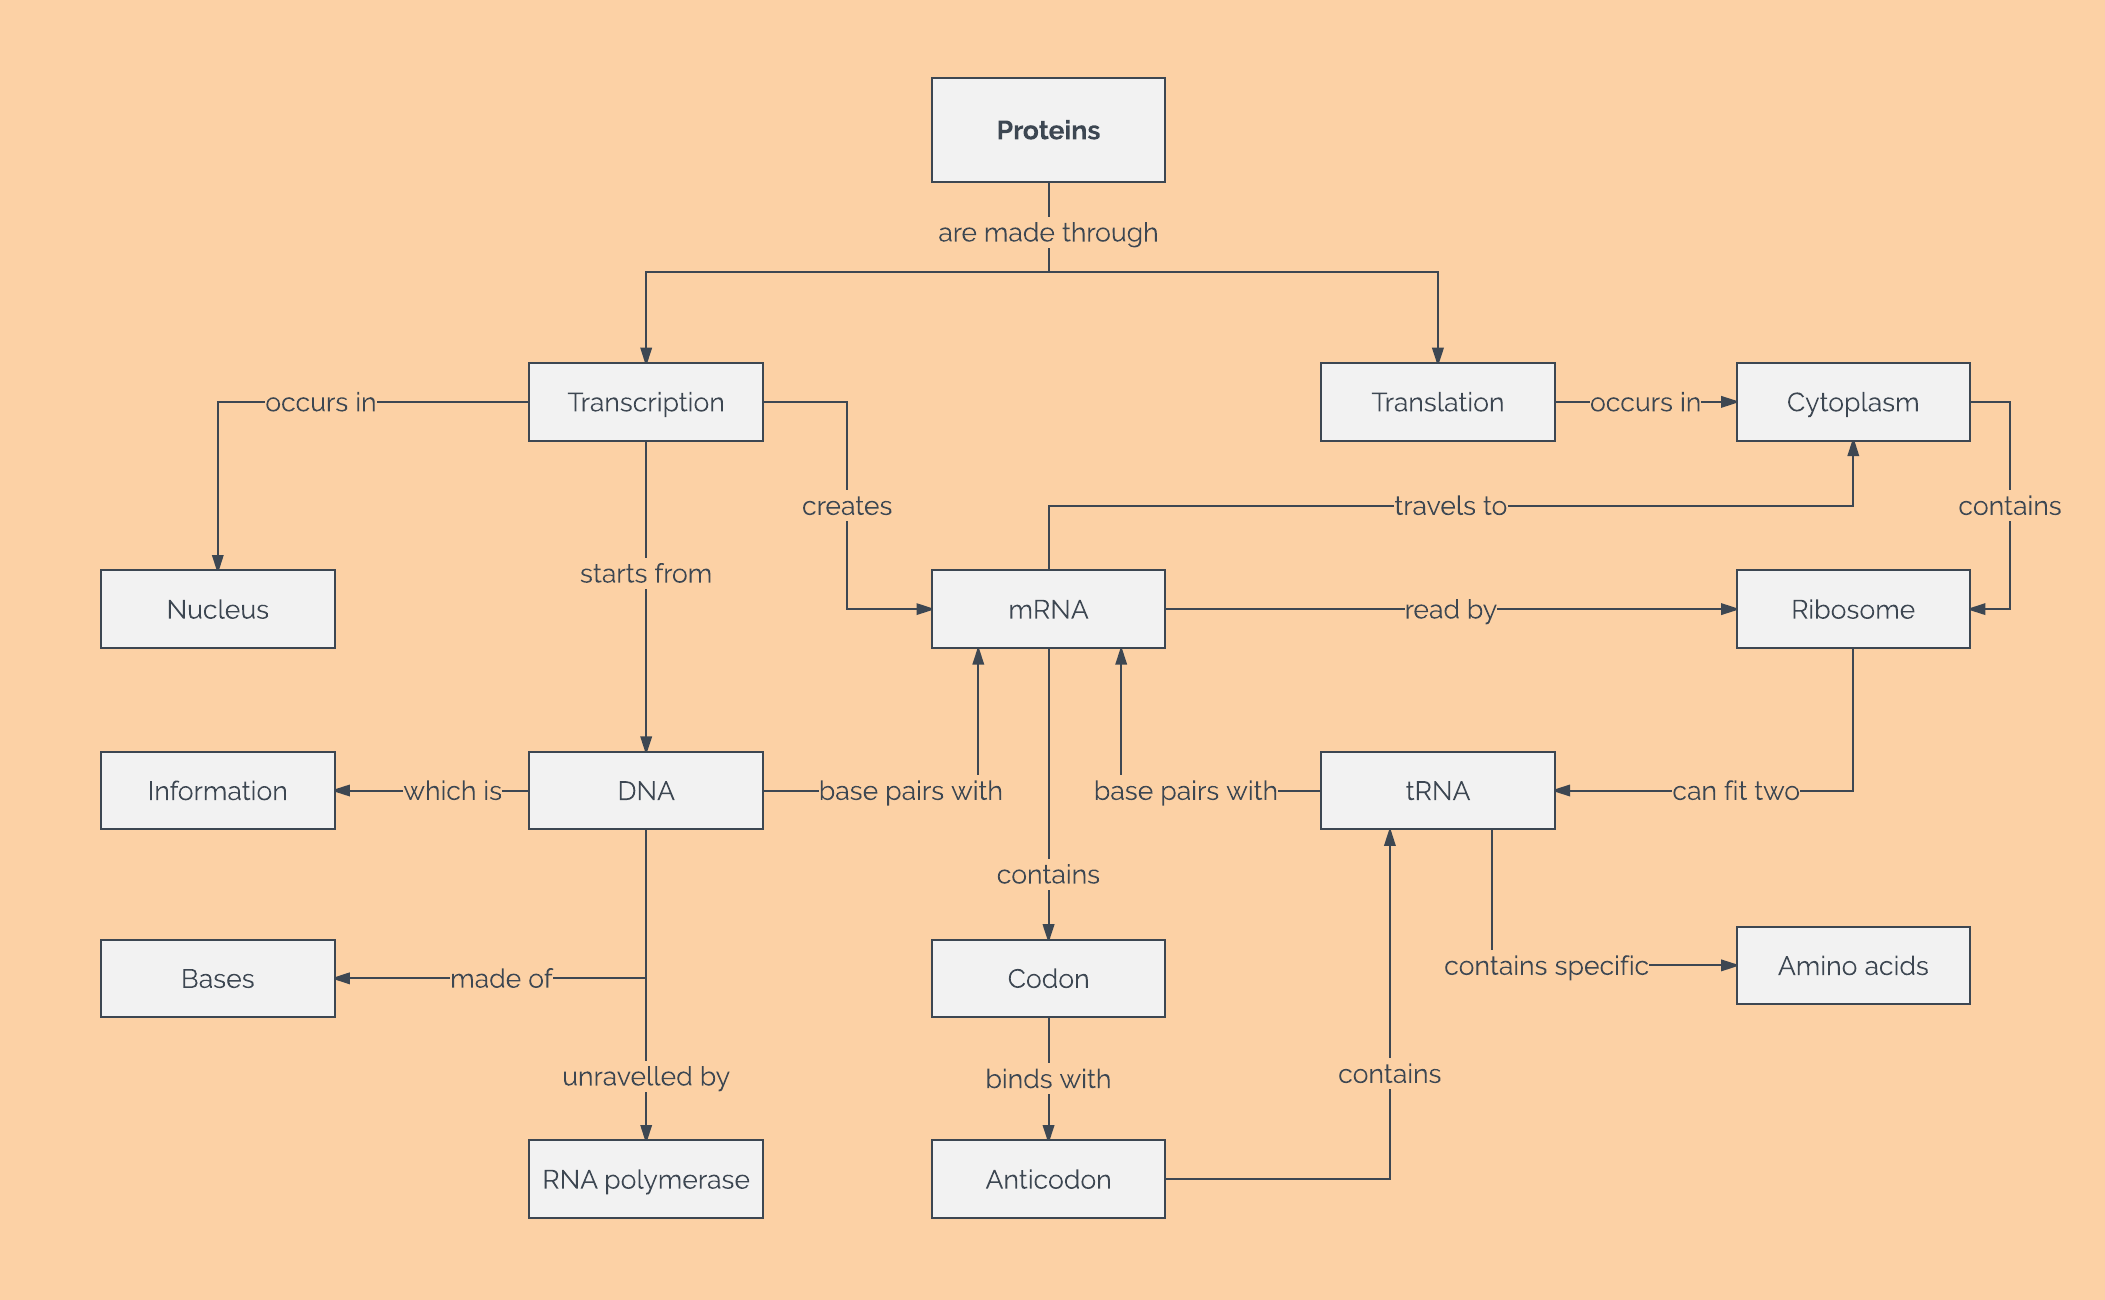 How to Make a Concept Map in Word | Lucidchart Blog